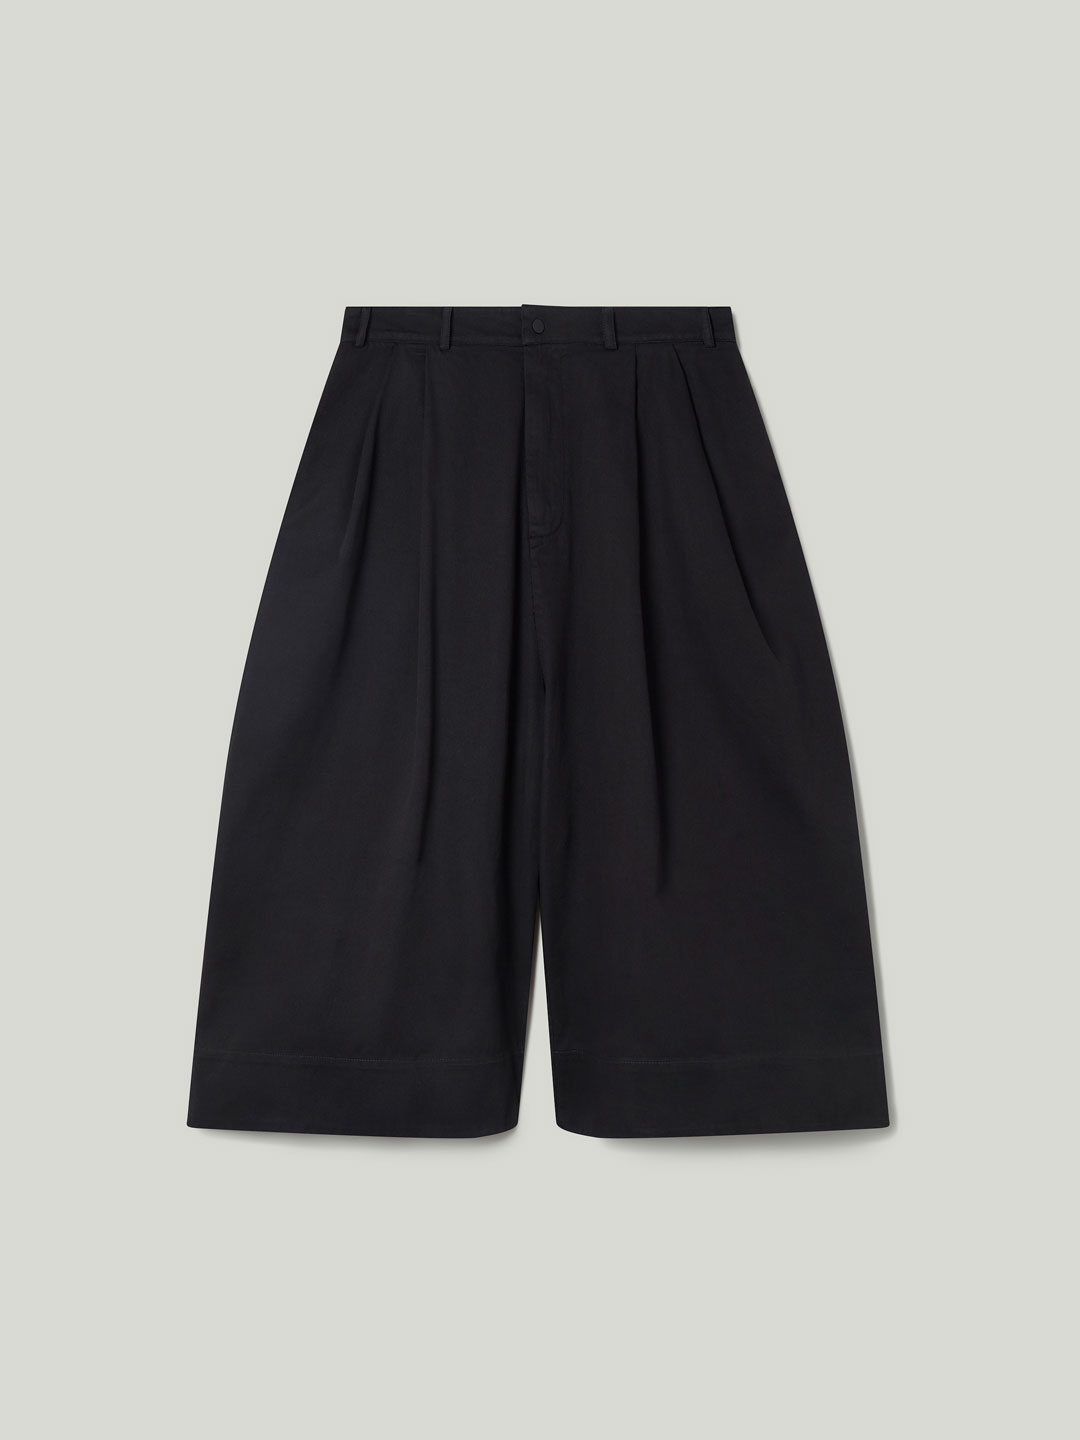 The Clown Trouser / Flint - Black